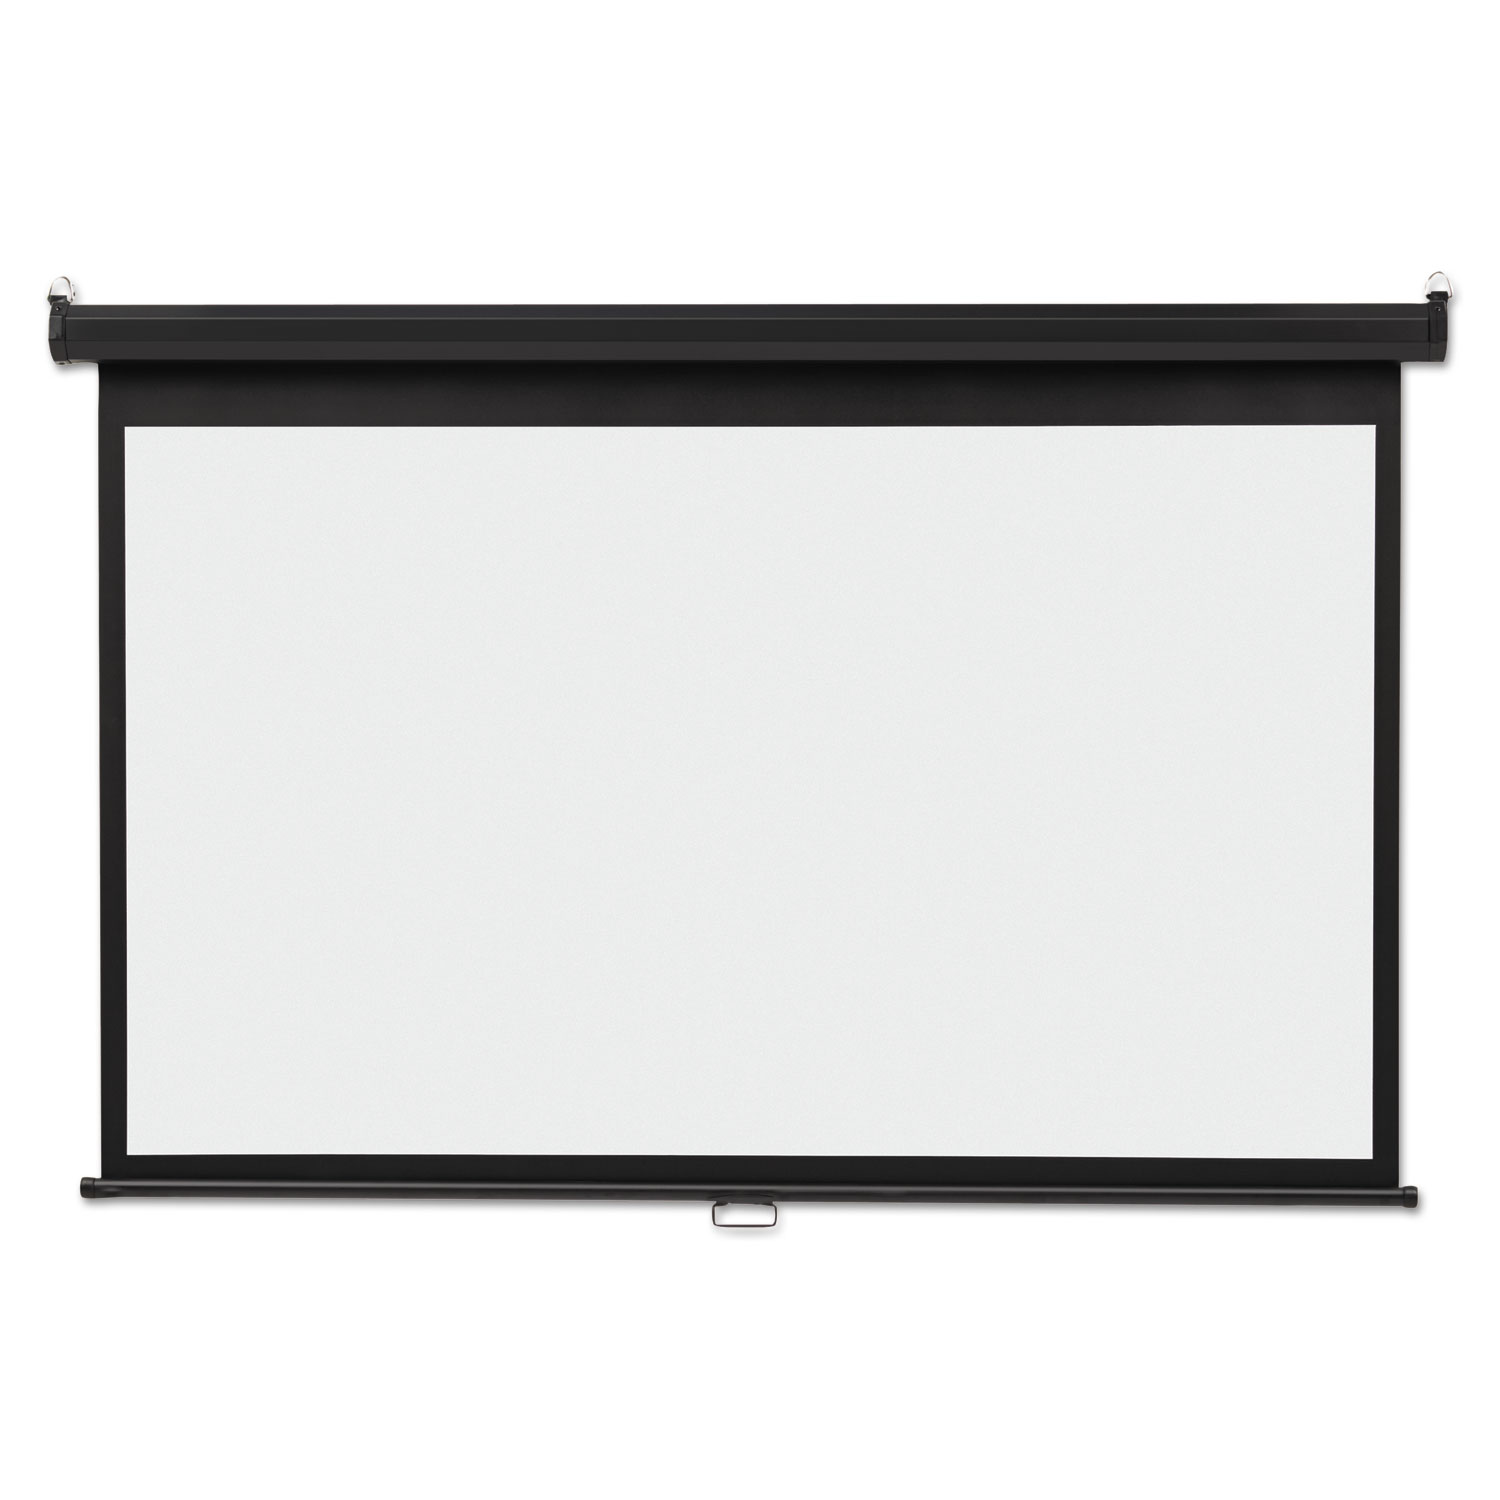 Picture of Wide Format Wall Mount Projection Screen, 65 x 116, White